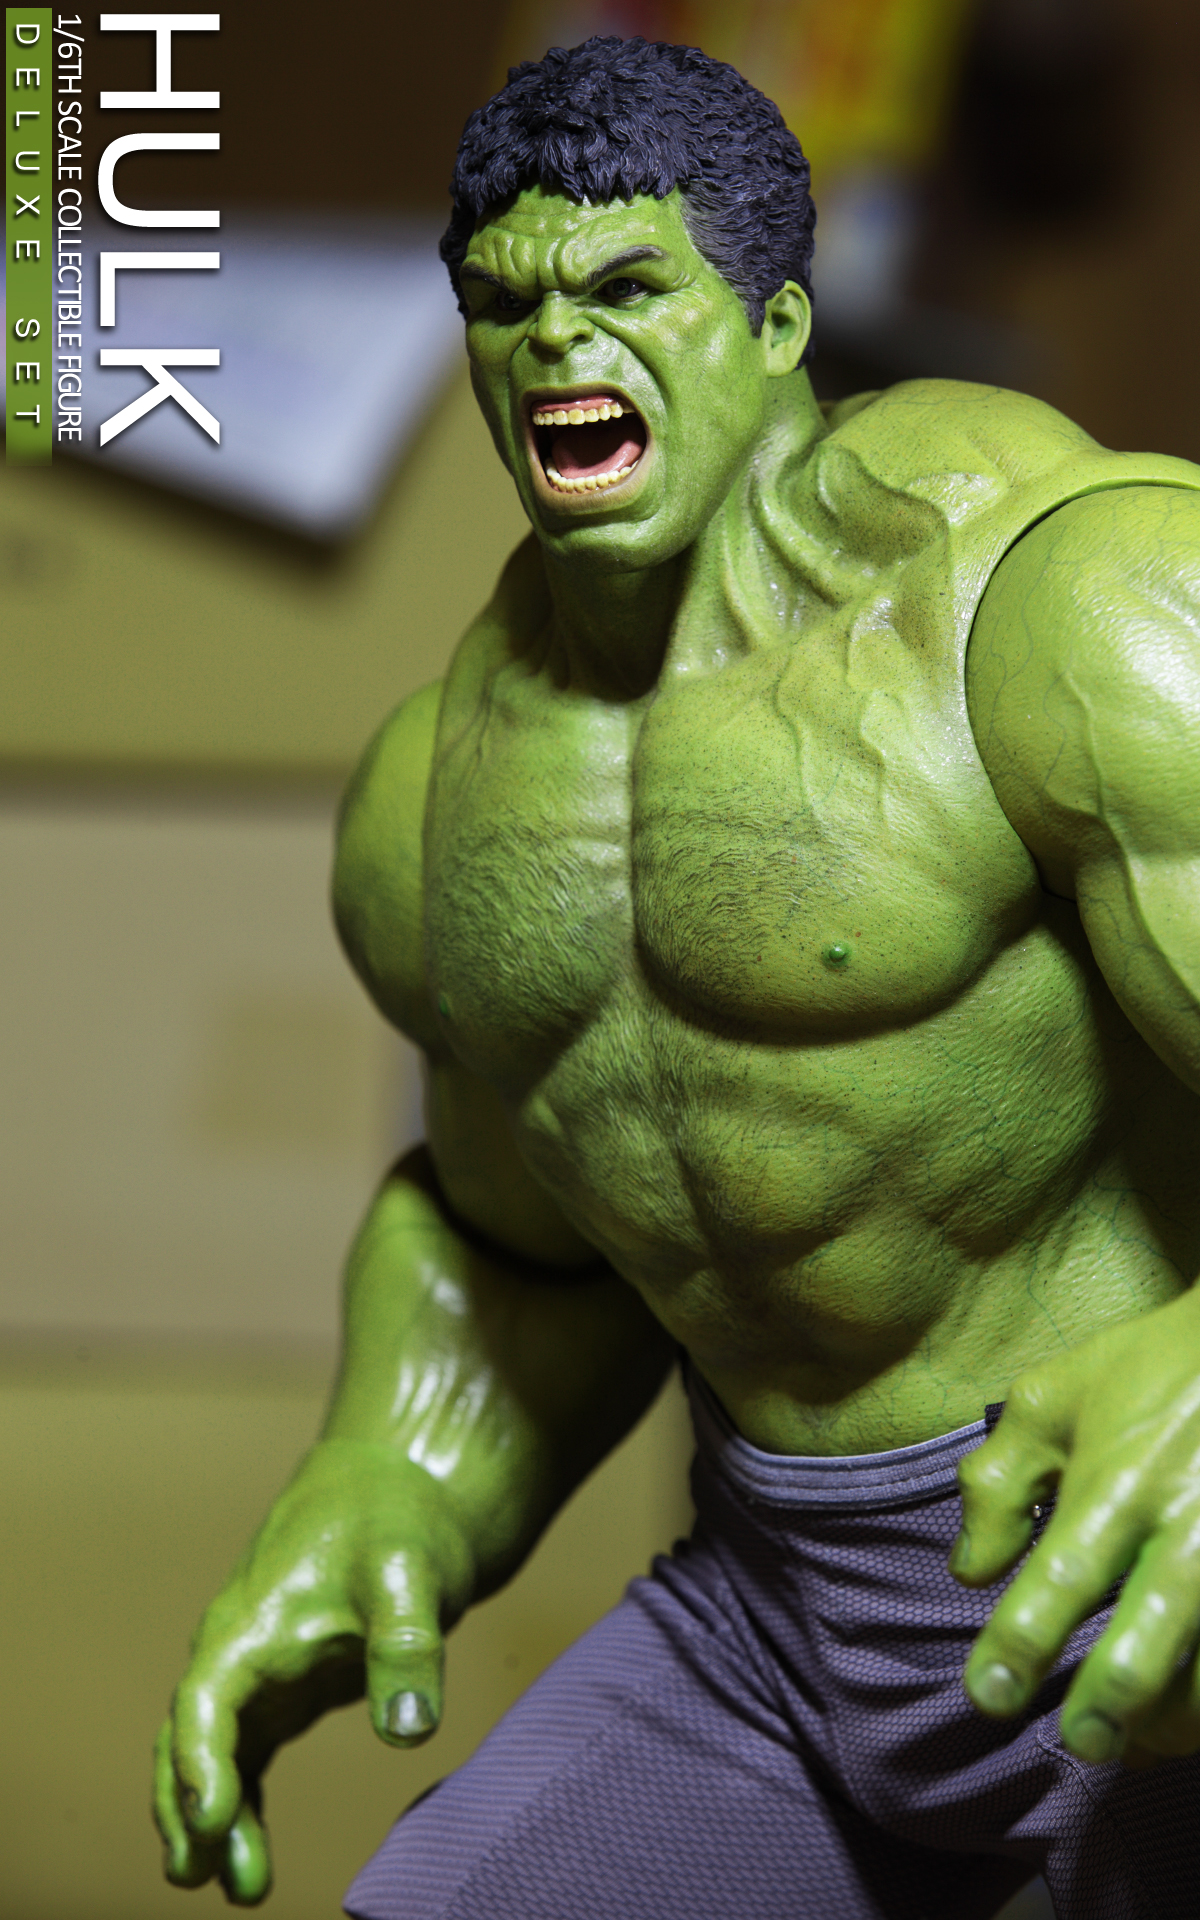 hottoys-avengers-age-of-ultron-hulk-picture13